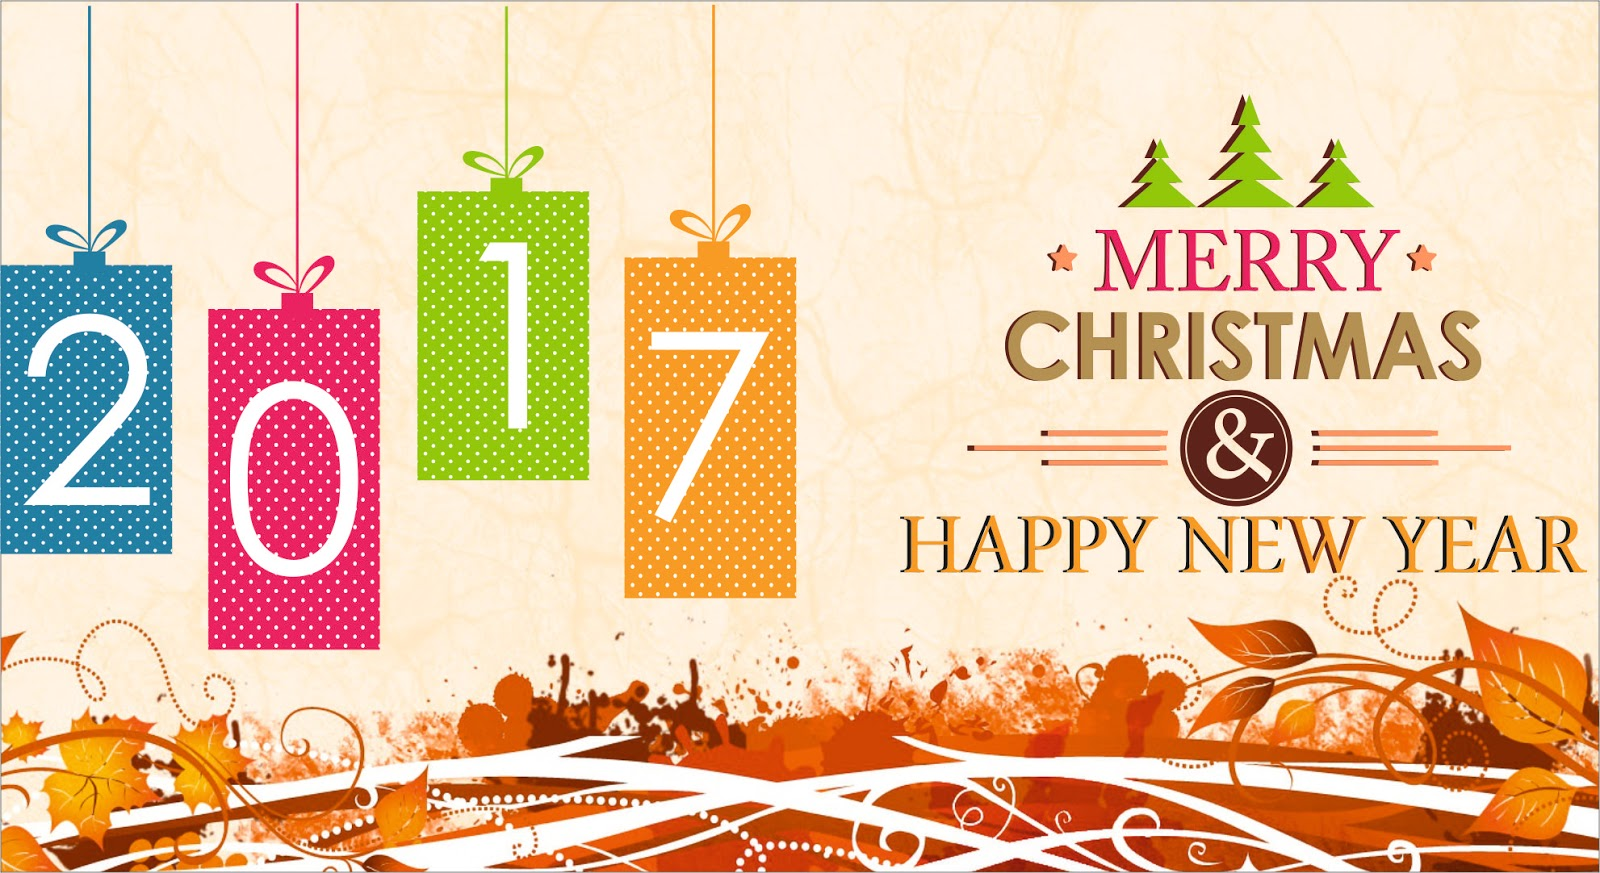 Merry Christmas Teacher Quotes.Merry Christmas And Happy New Year Lm Services Ni Ltd